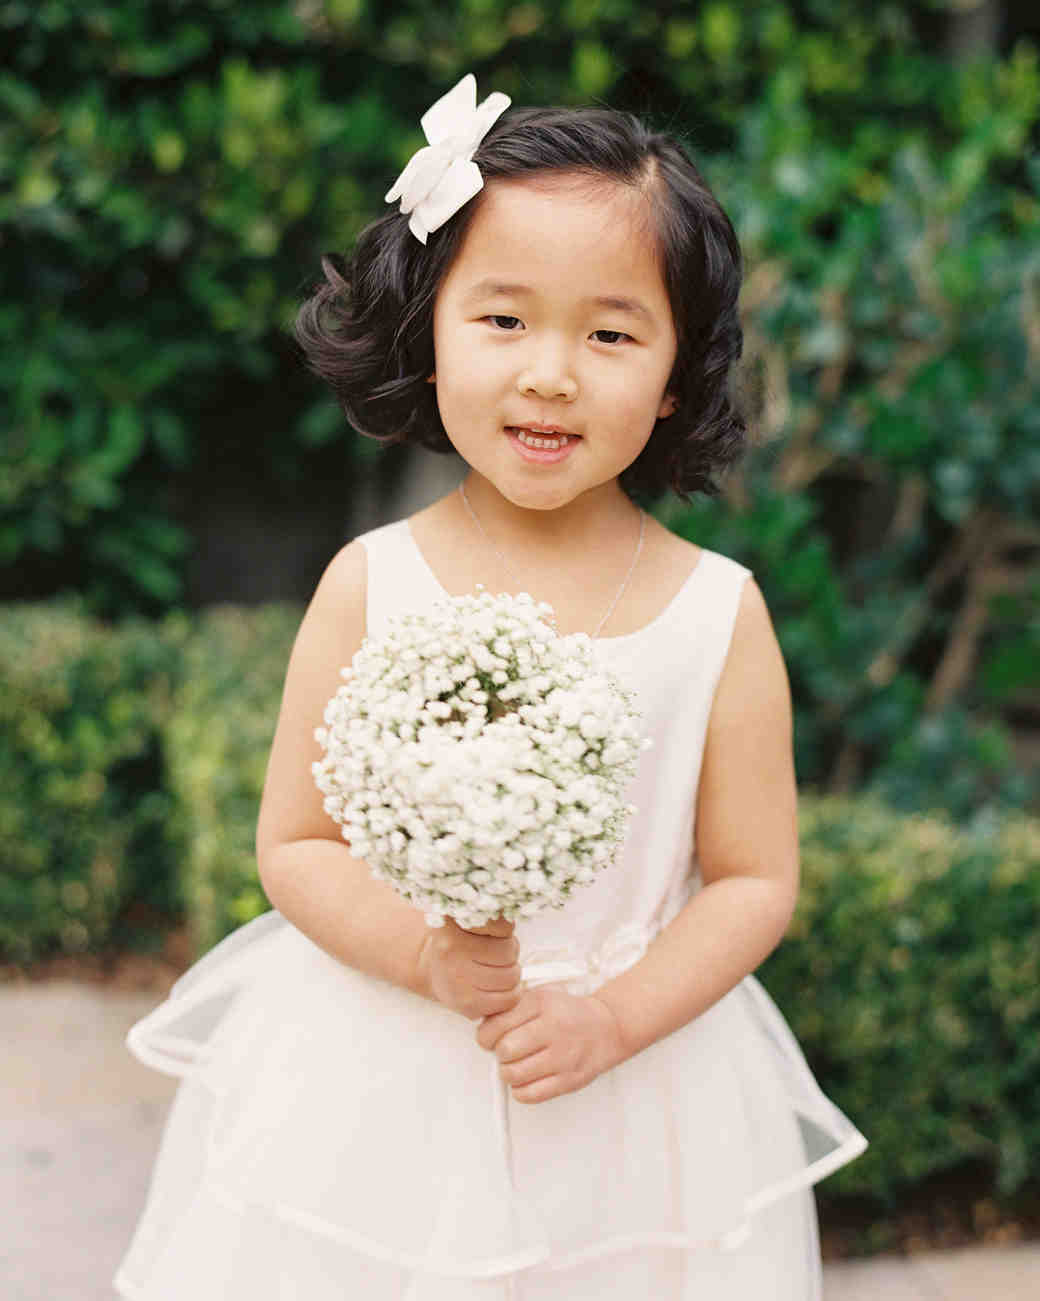 d5ebcfdd246 Adorable Hairstyle Ideas for Your Flower Girls